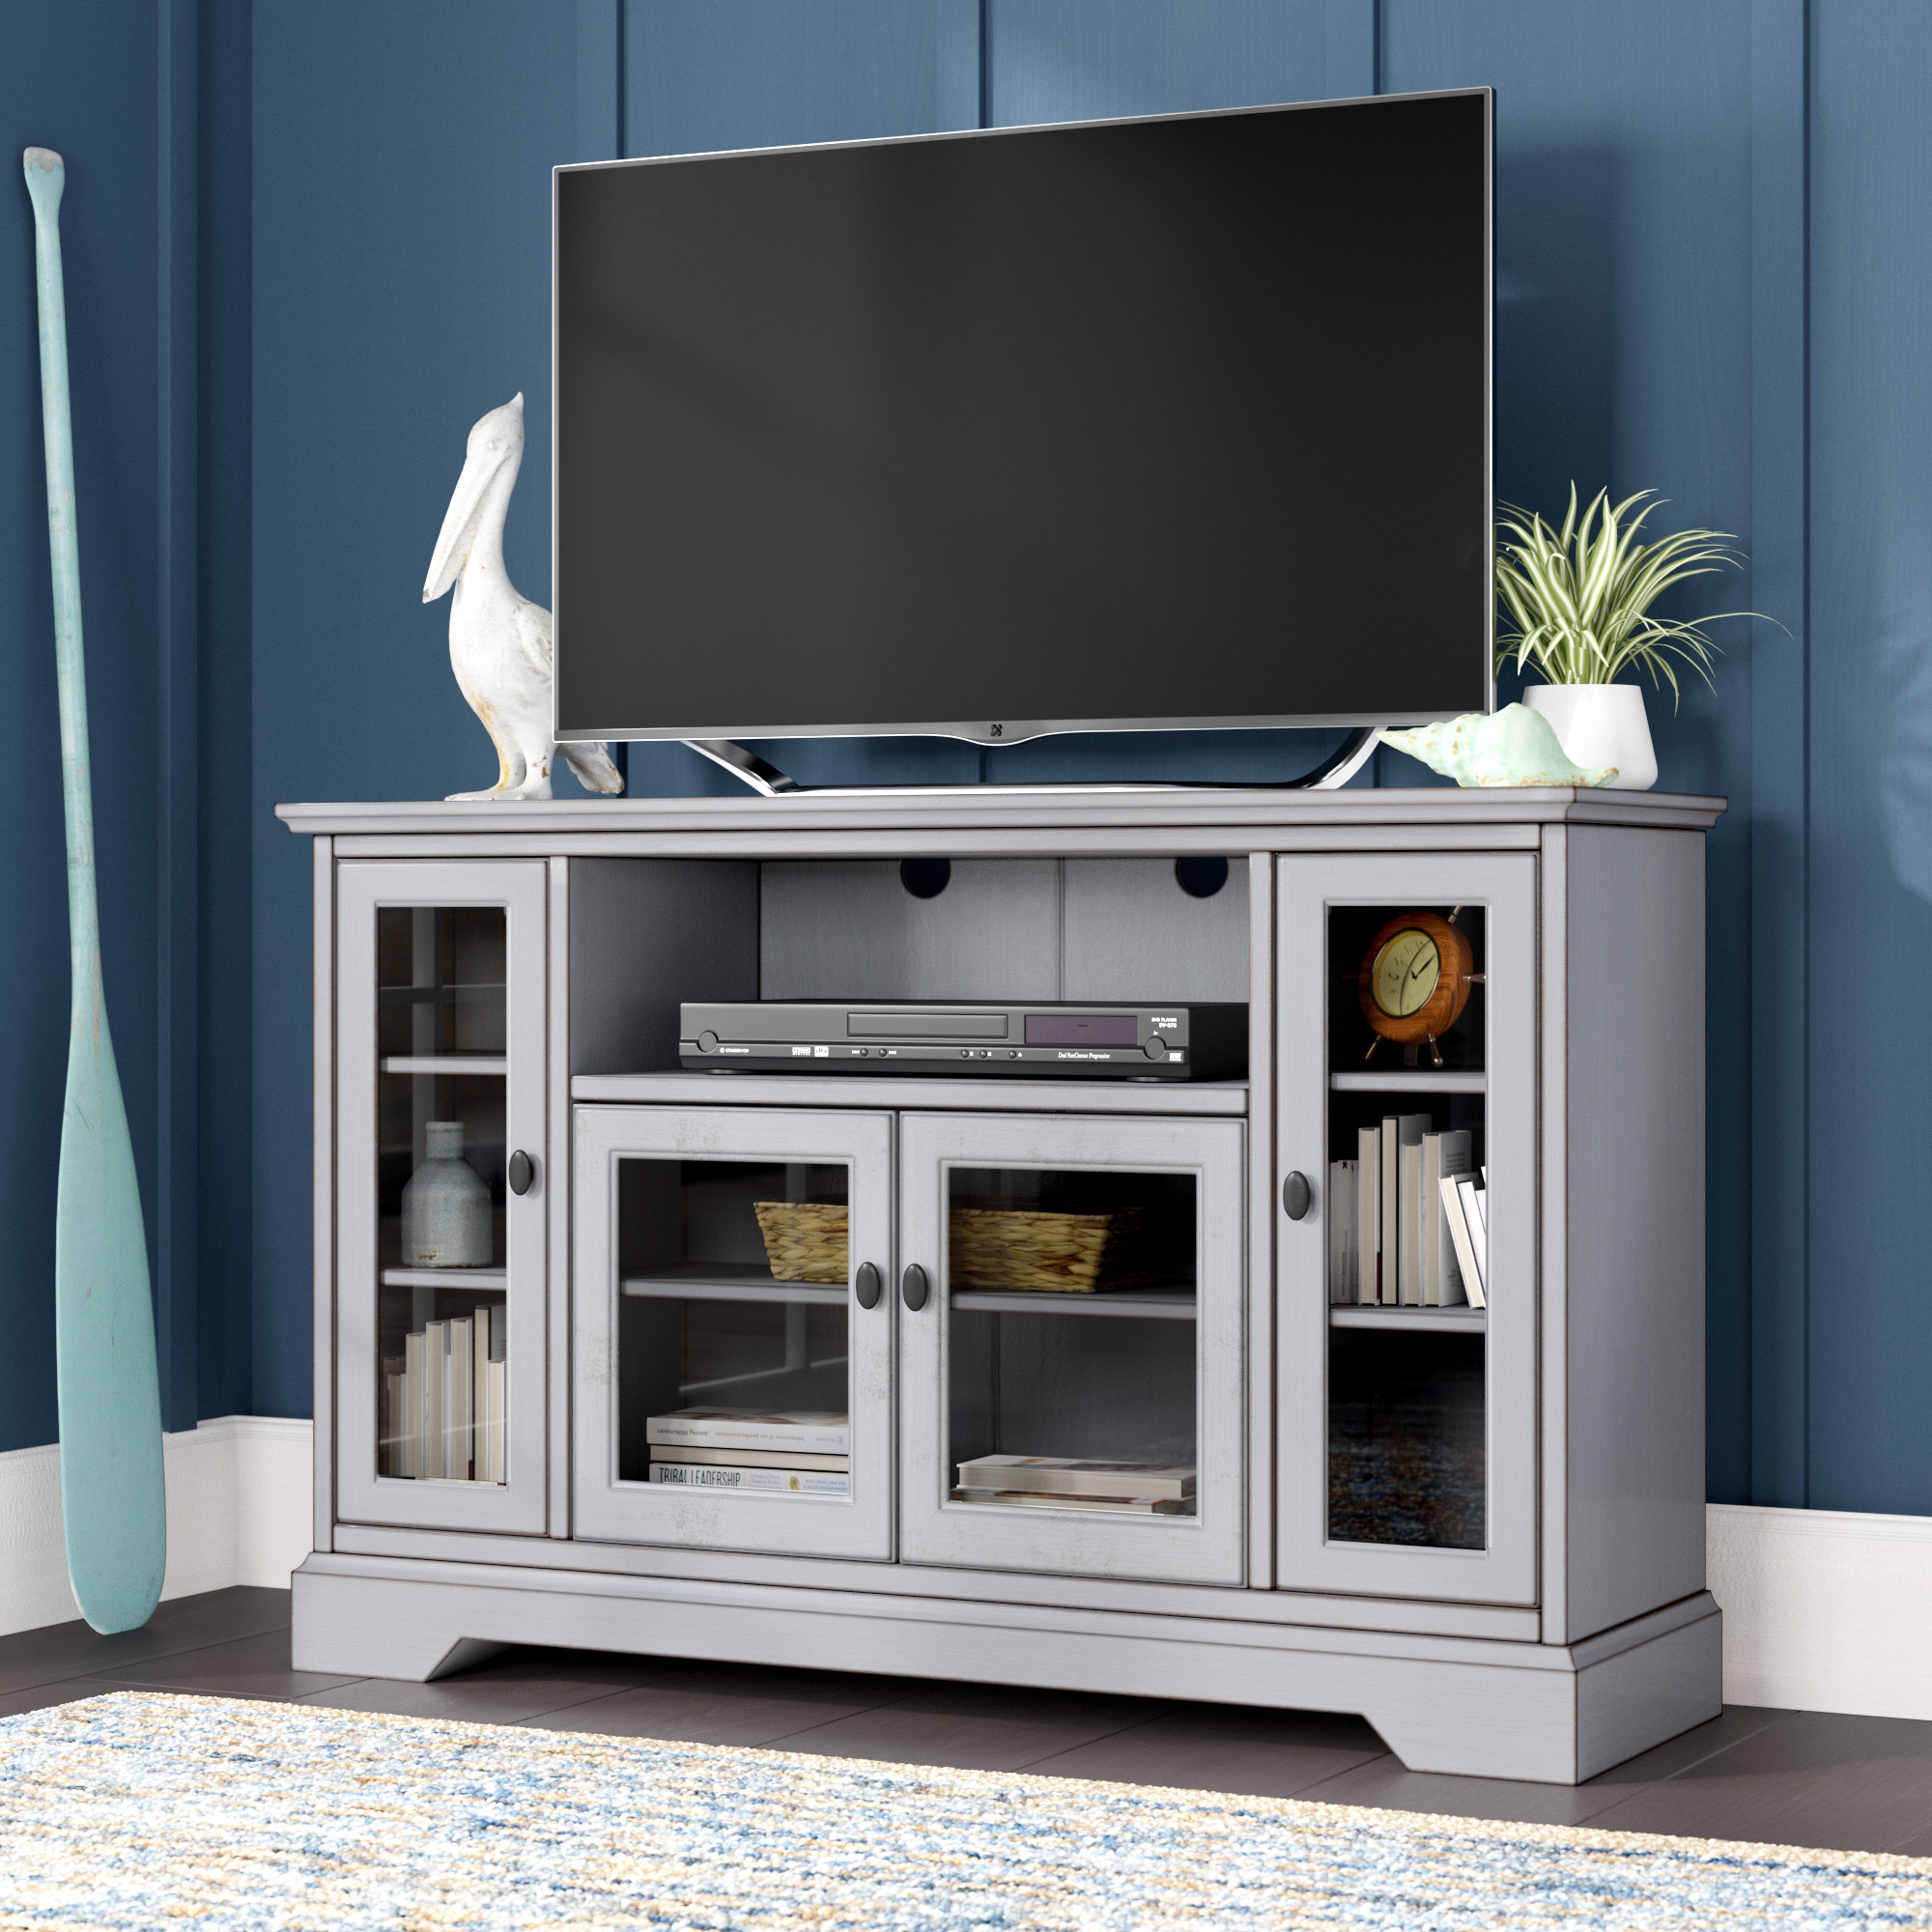 Tall Narrow Tv Stand | Wayfair Within Edwin Black 64 Inch Tv Stands (View 10 of 30)